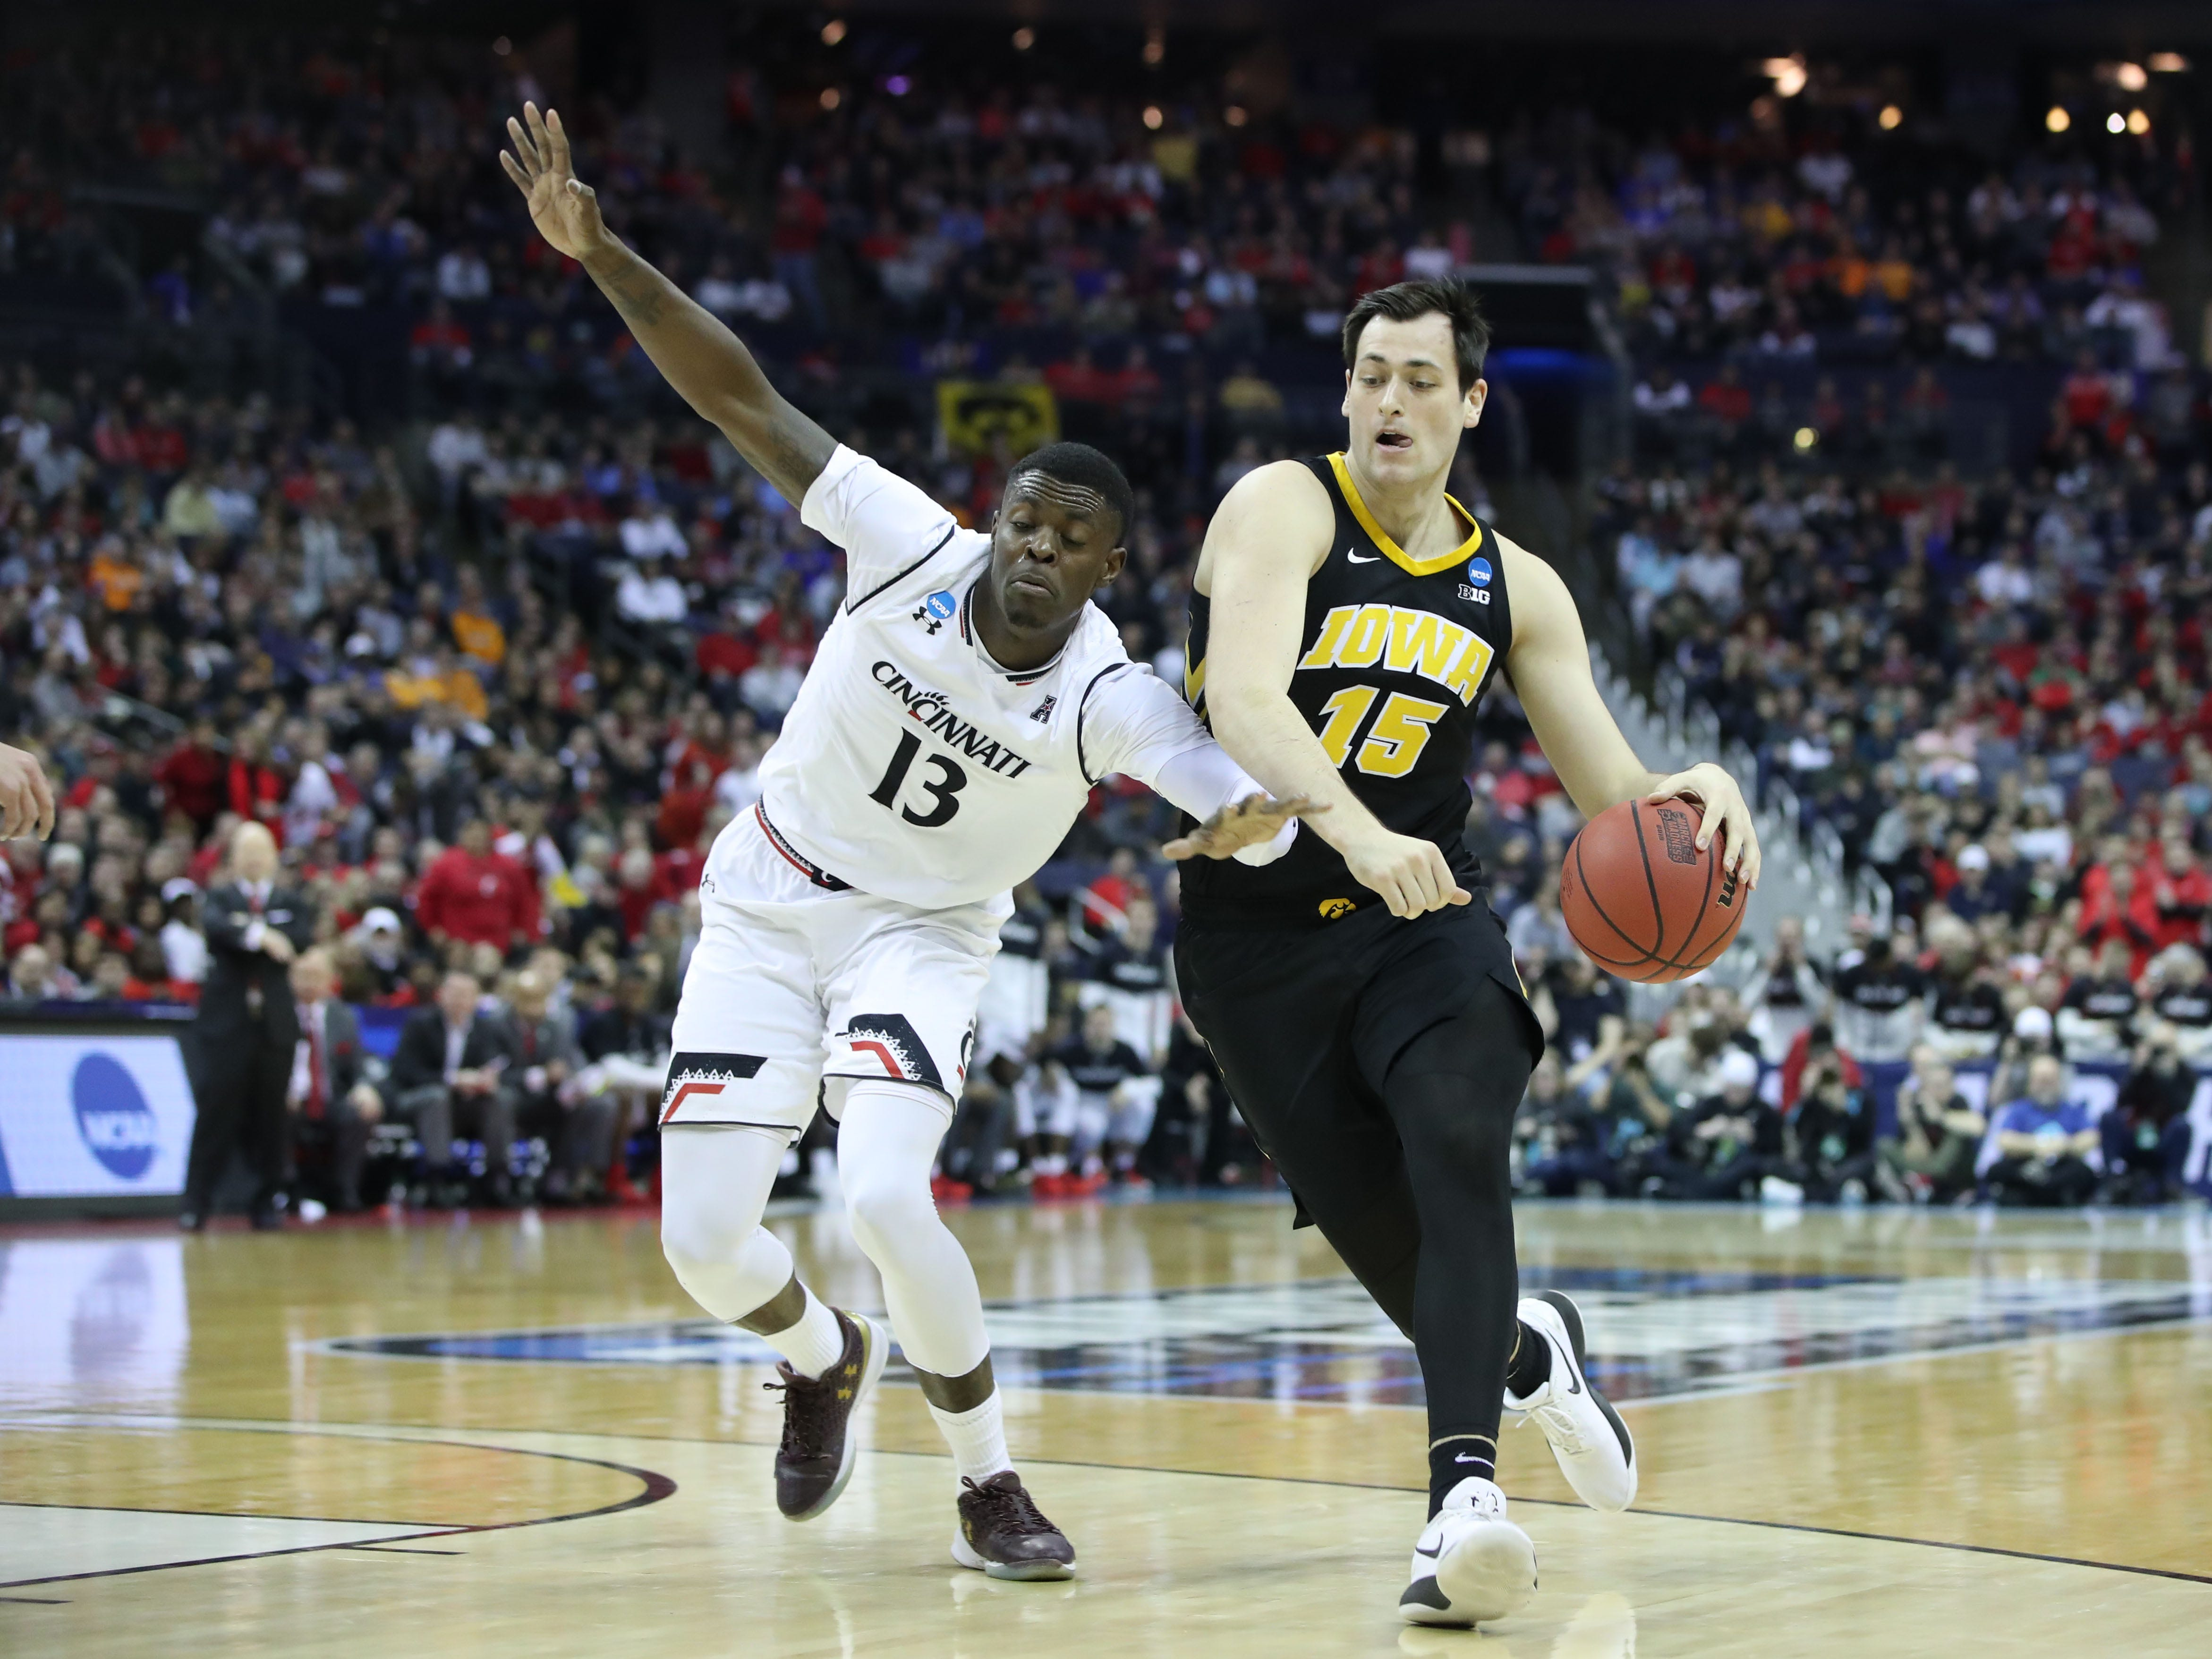 Iowa Hawkeyes forward Ryan Kriener (15) dribbles down the court defended by Cincinnati Bearcats forward Tre Scott (13) in the second half in the first round of the 2019 NCAA Tournament at Nationwide Arena on March 22, 2019.